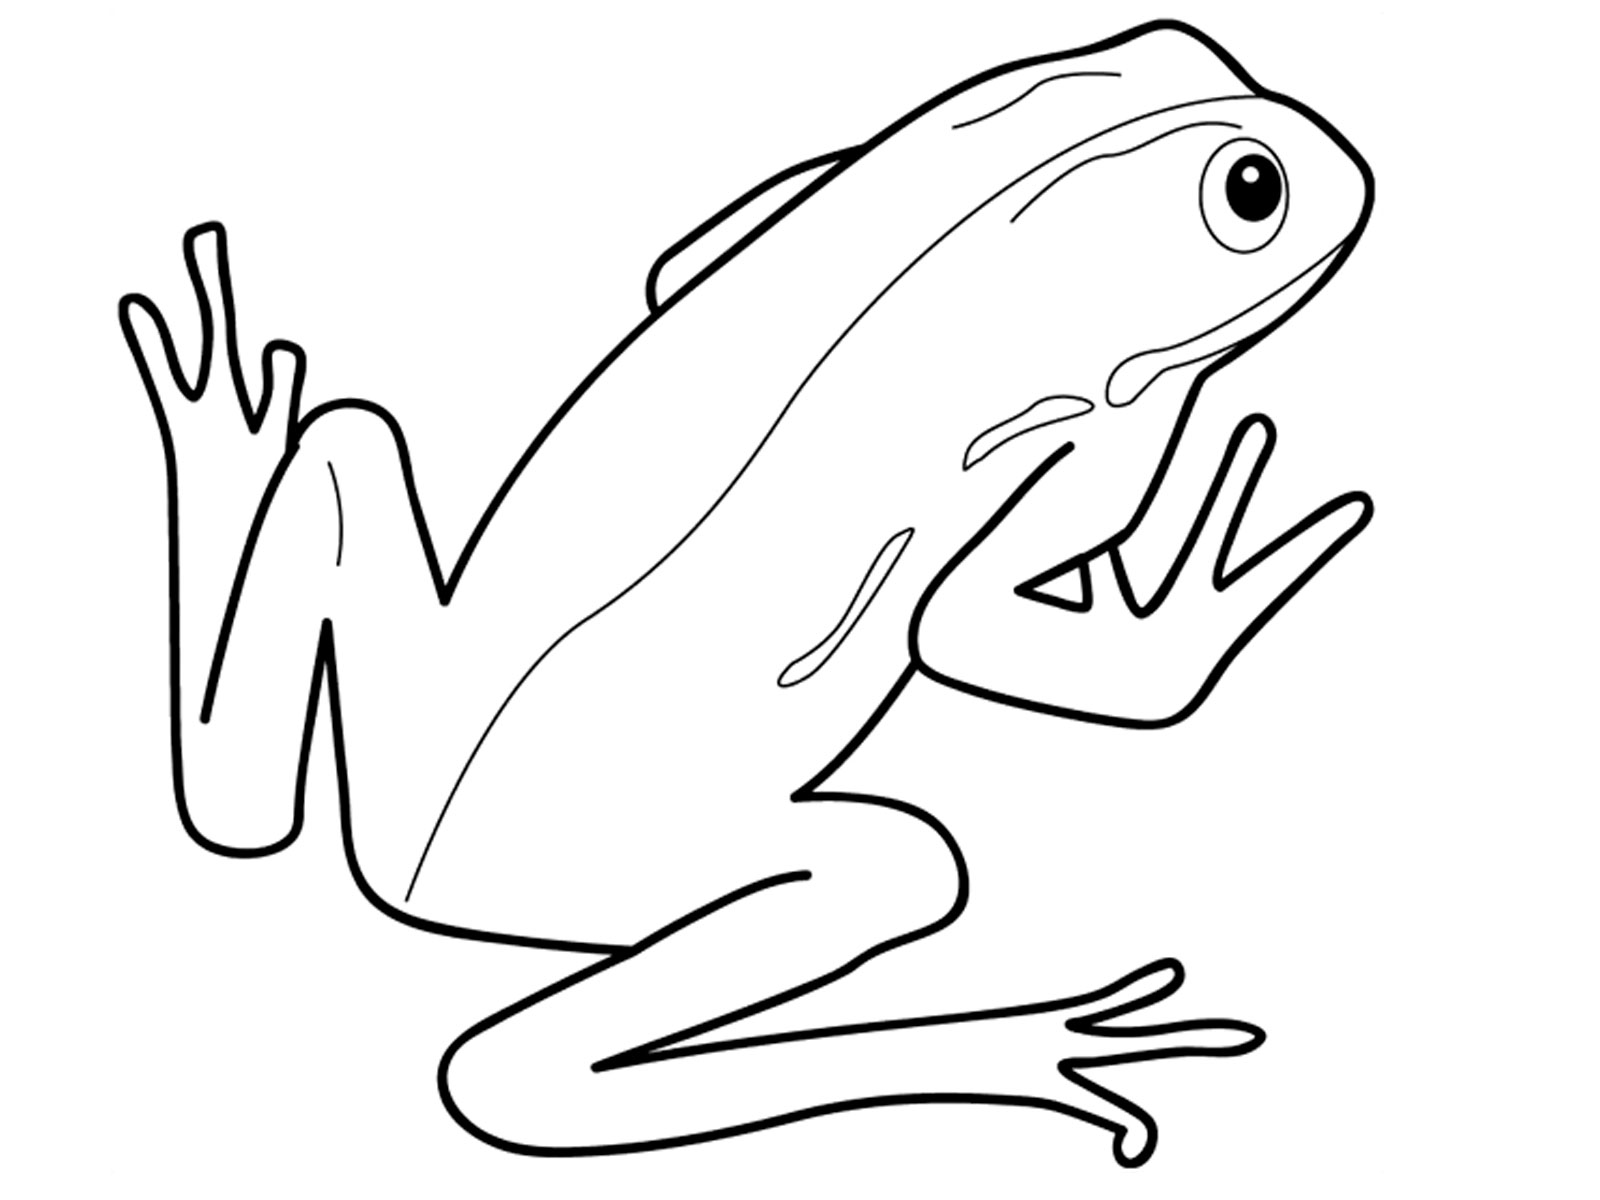 Amphibious Reptile Colouring Pages Page 2